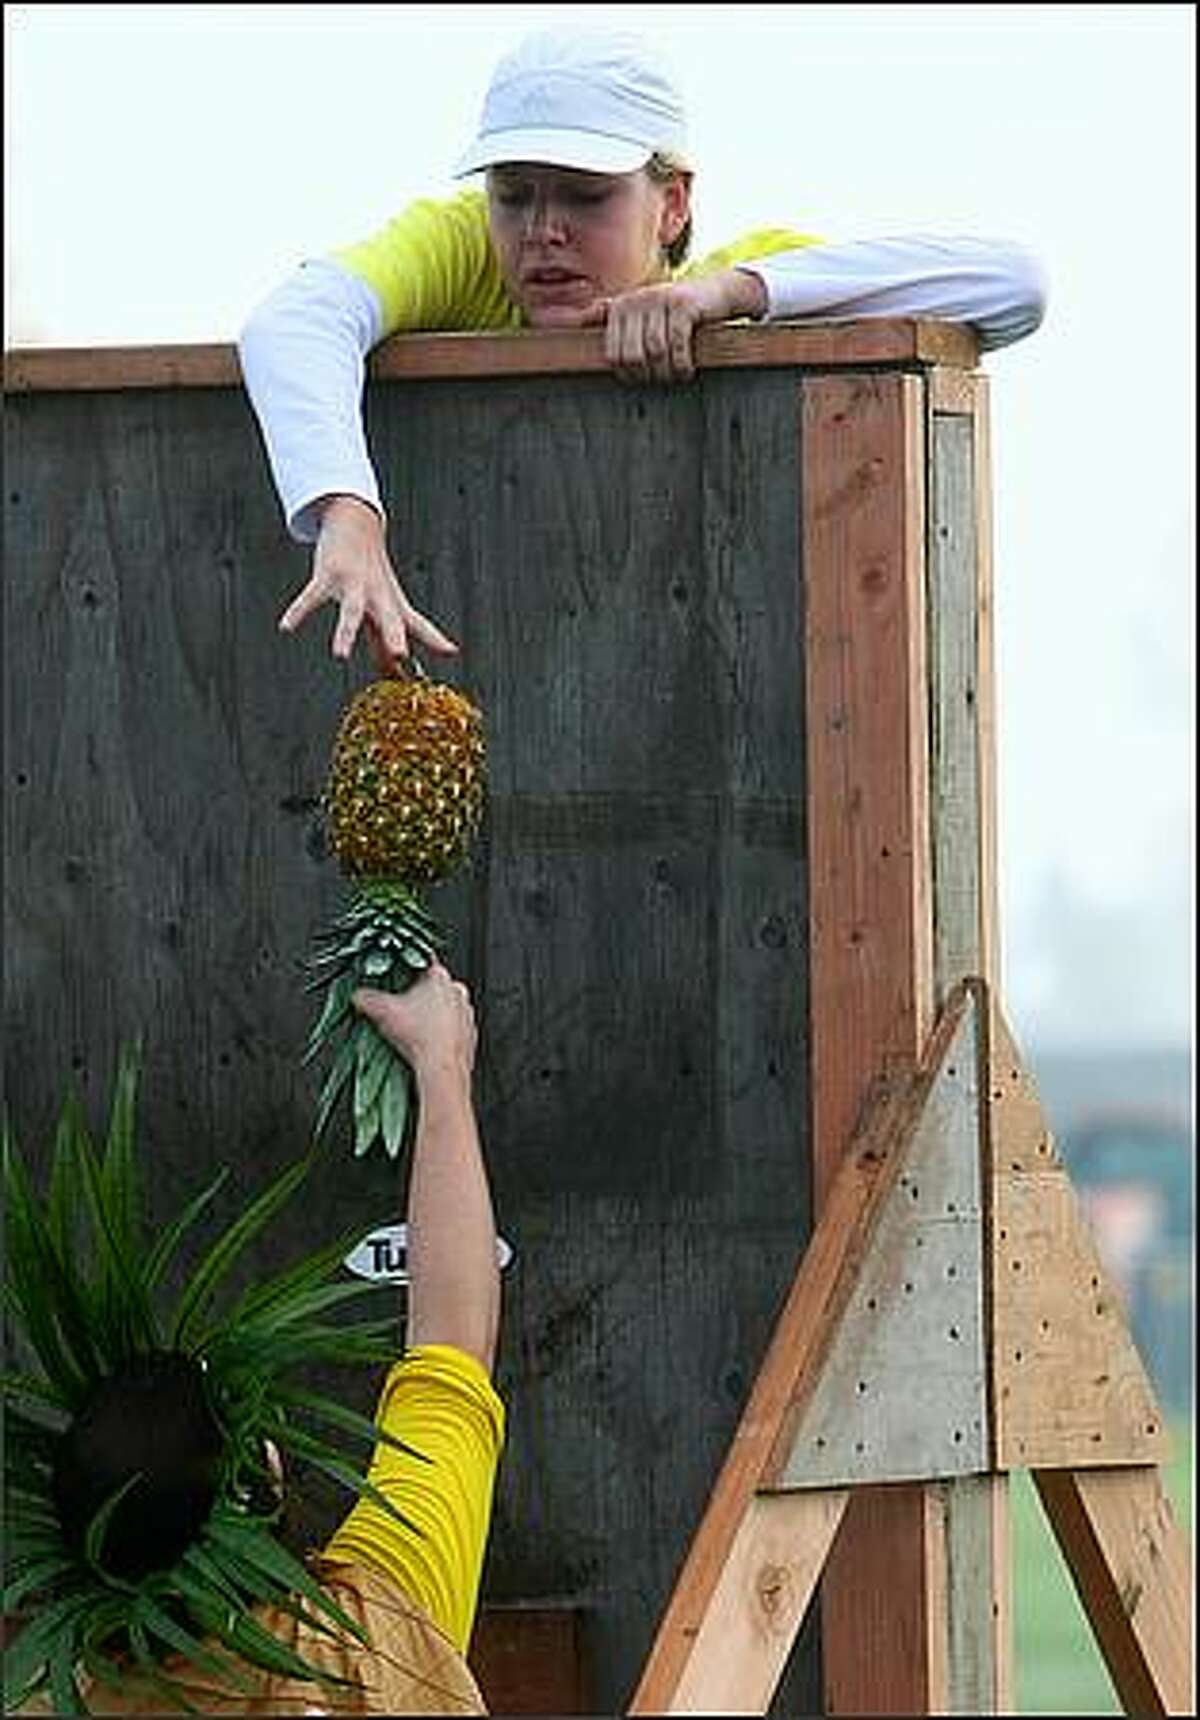 Participants pass a pineapple over an obstacle during The Winter Pineapple Classic.